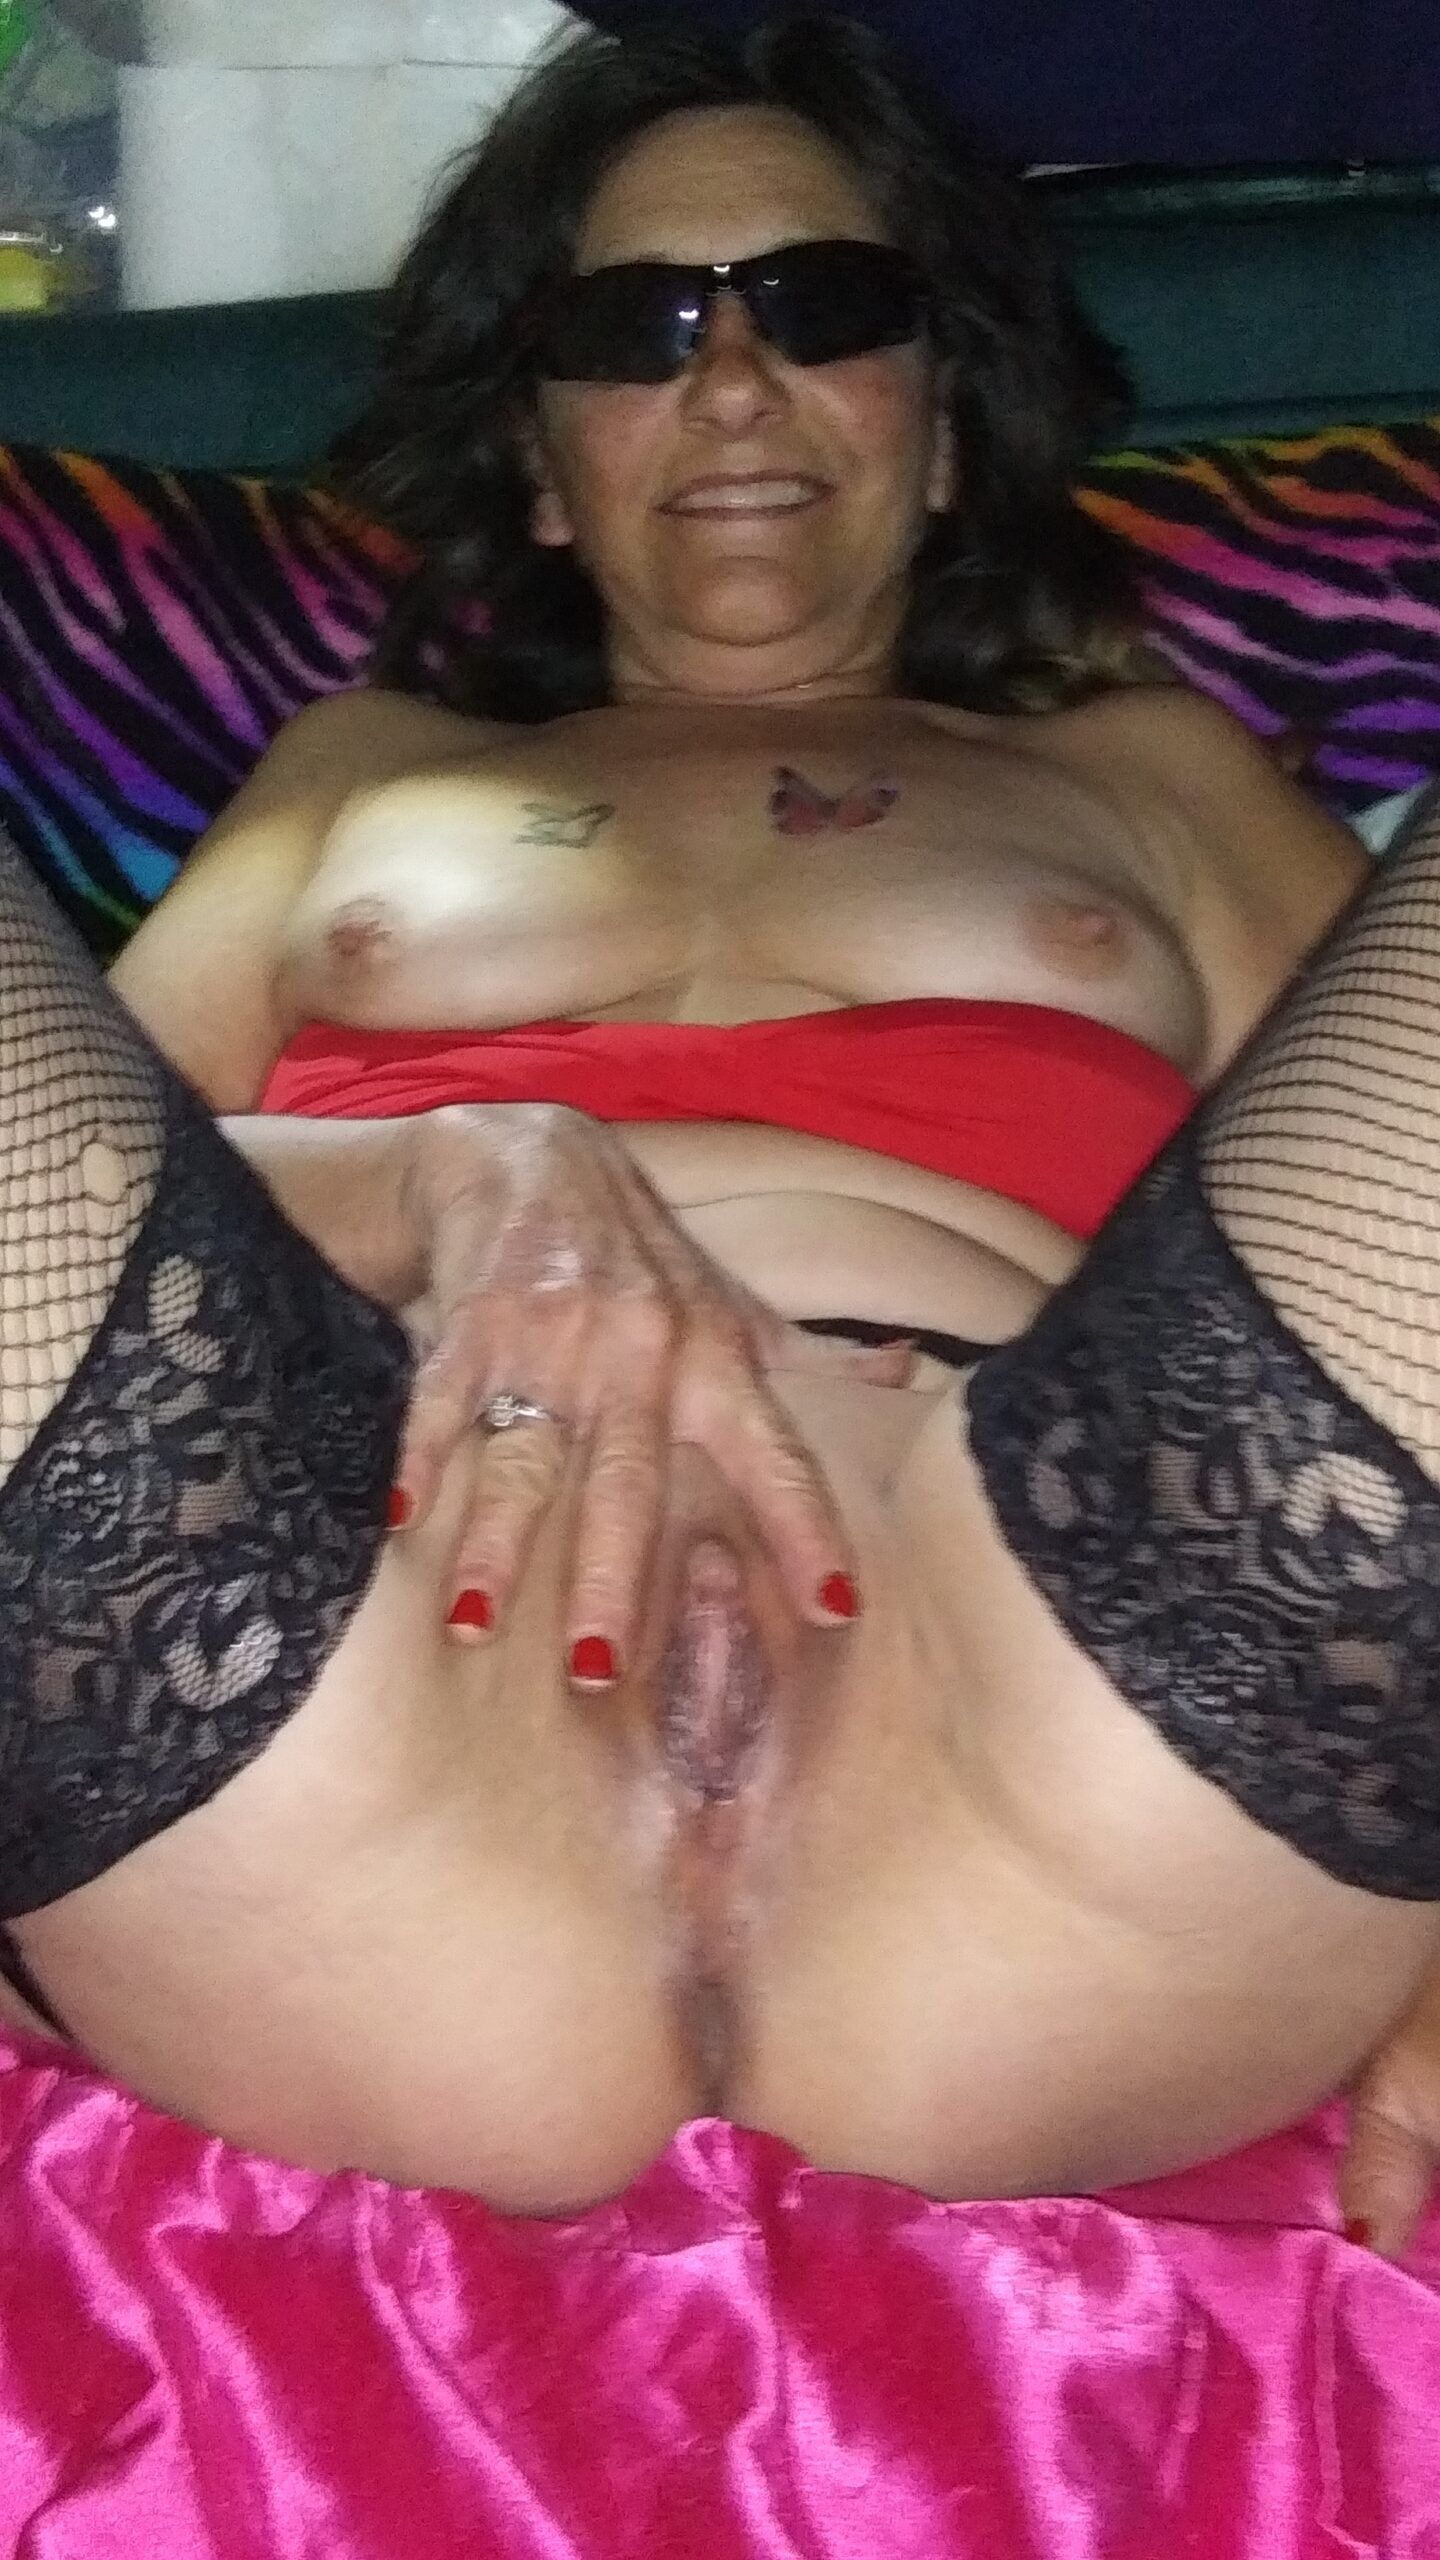 Mature tight pussy Pat tits 467 real nudity pussy flash no panties mature